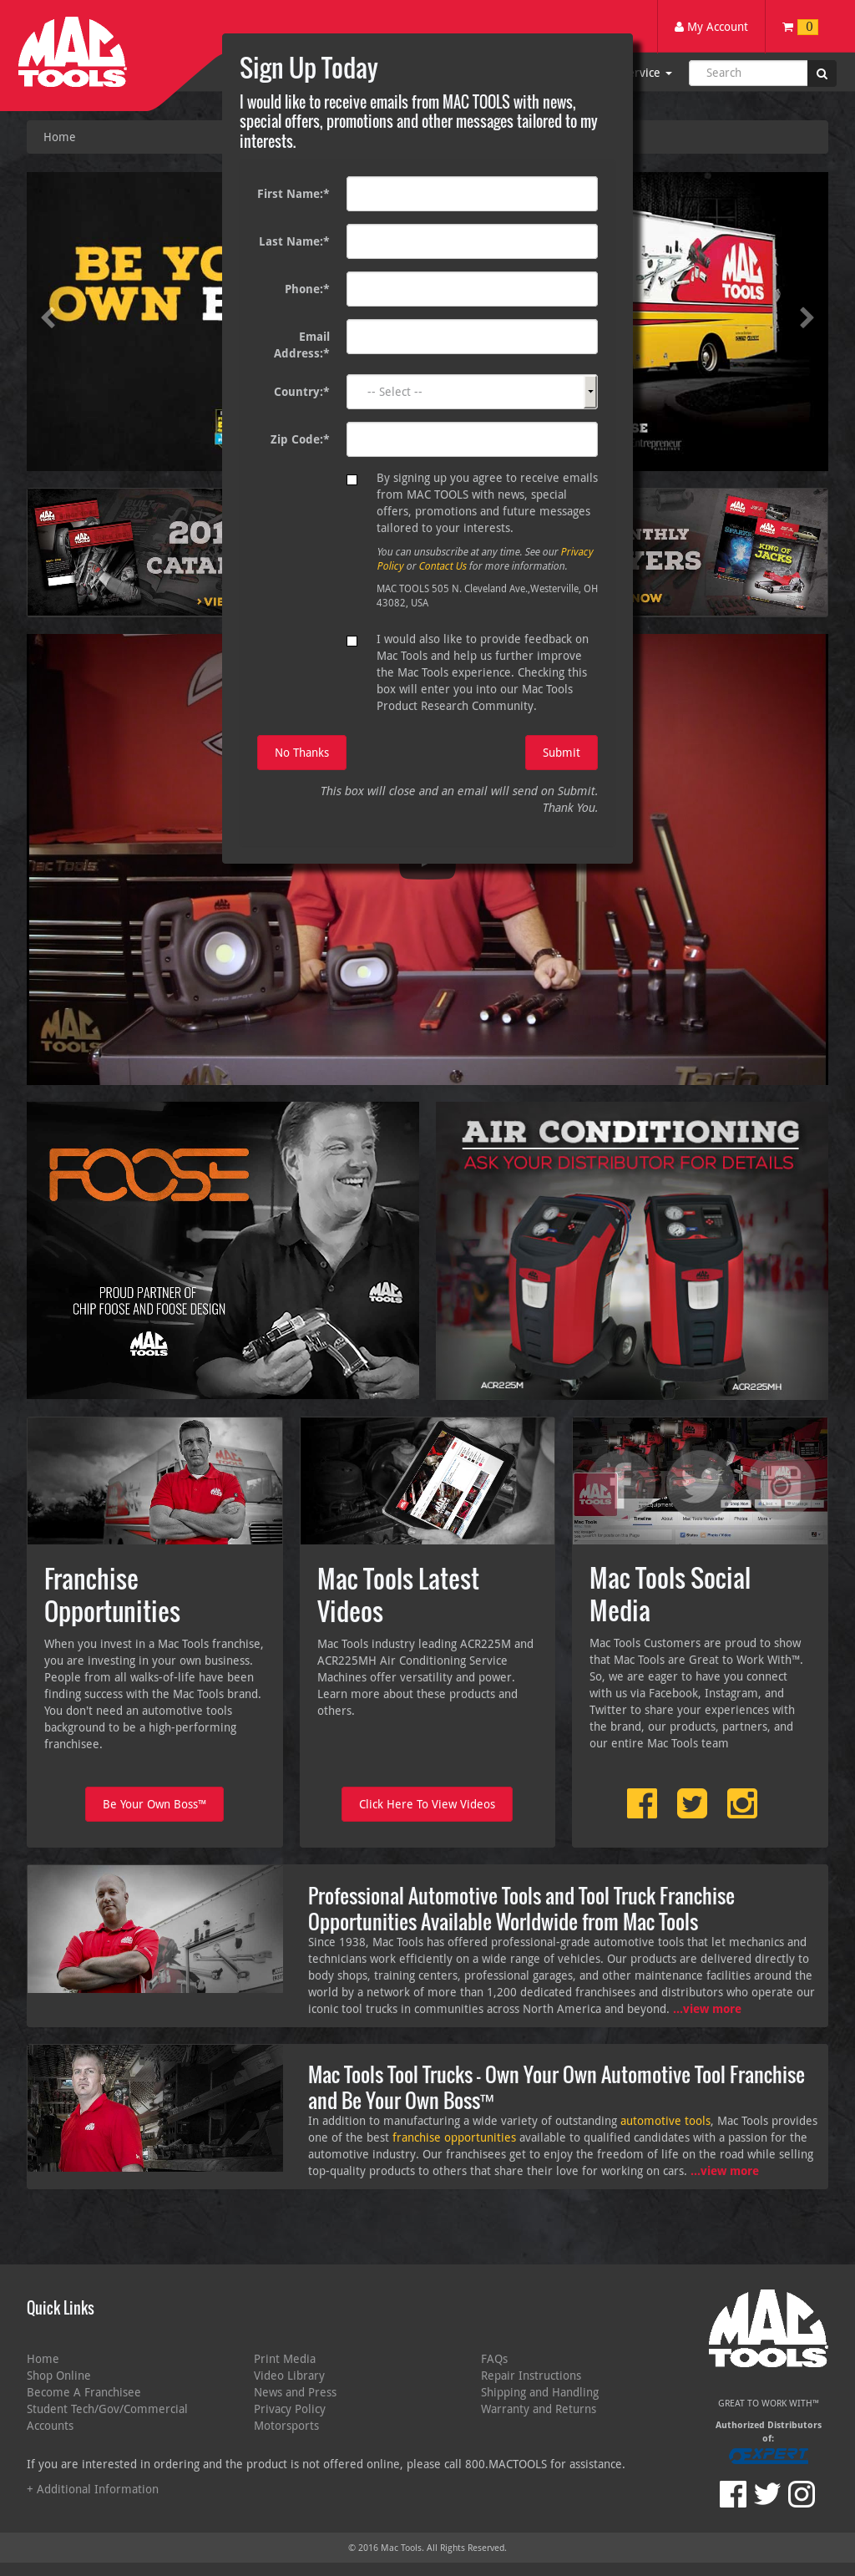 Mac Tools Competitors, Revenue and Employees - Owler Company